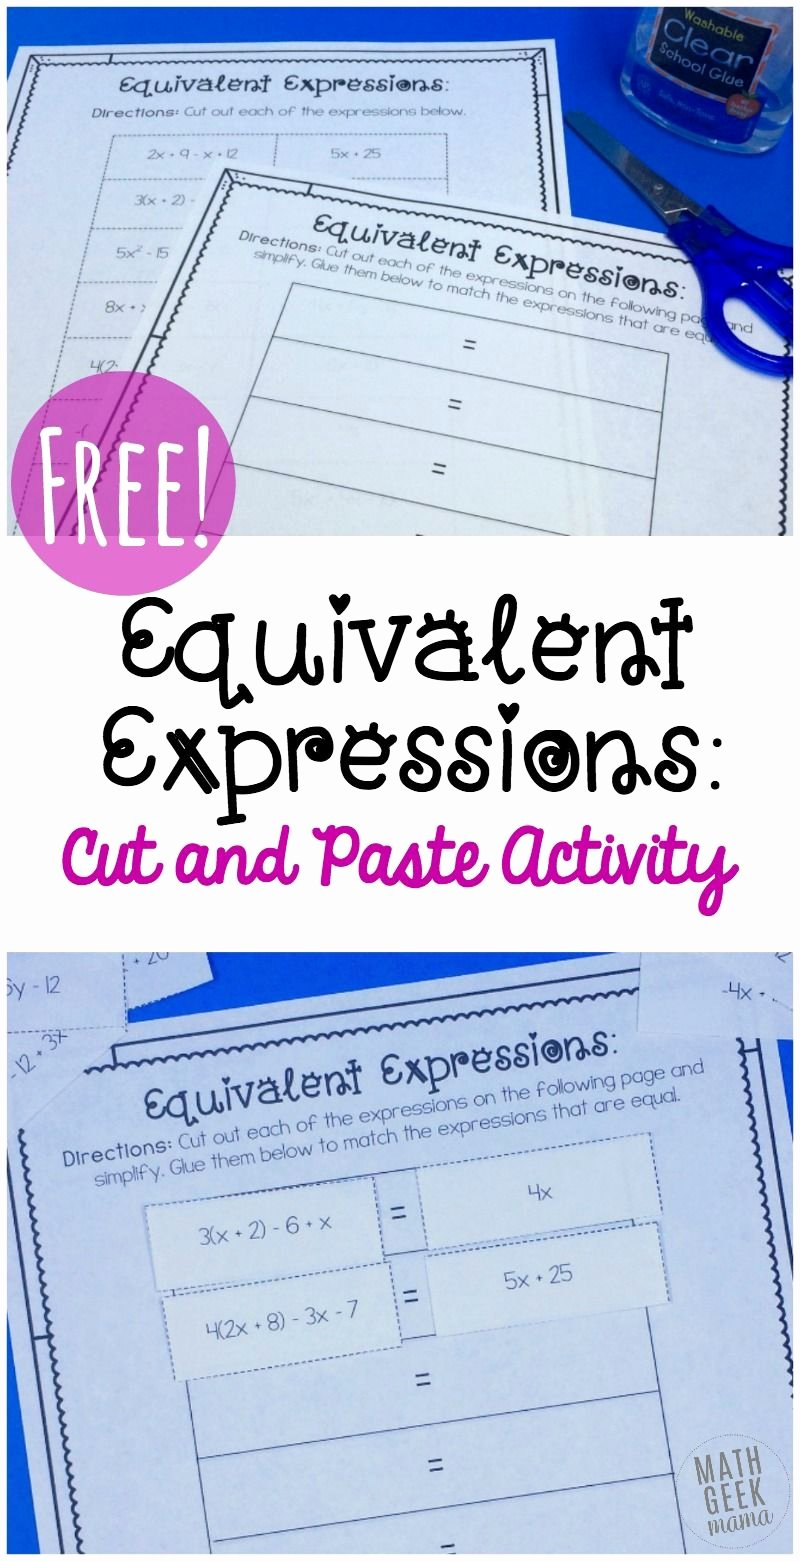 Equivalent Expressions Worksheet 7th Grade Printable Simple Equivalent Expressions Activity Free